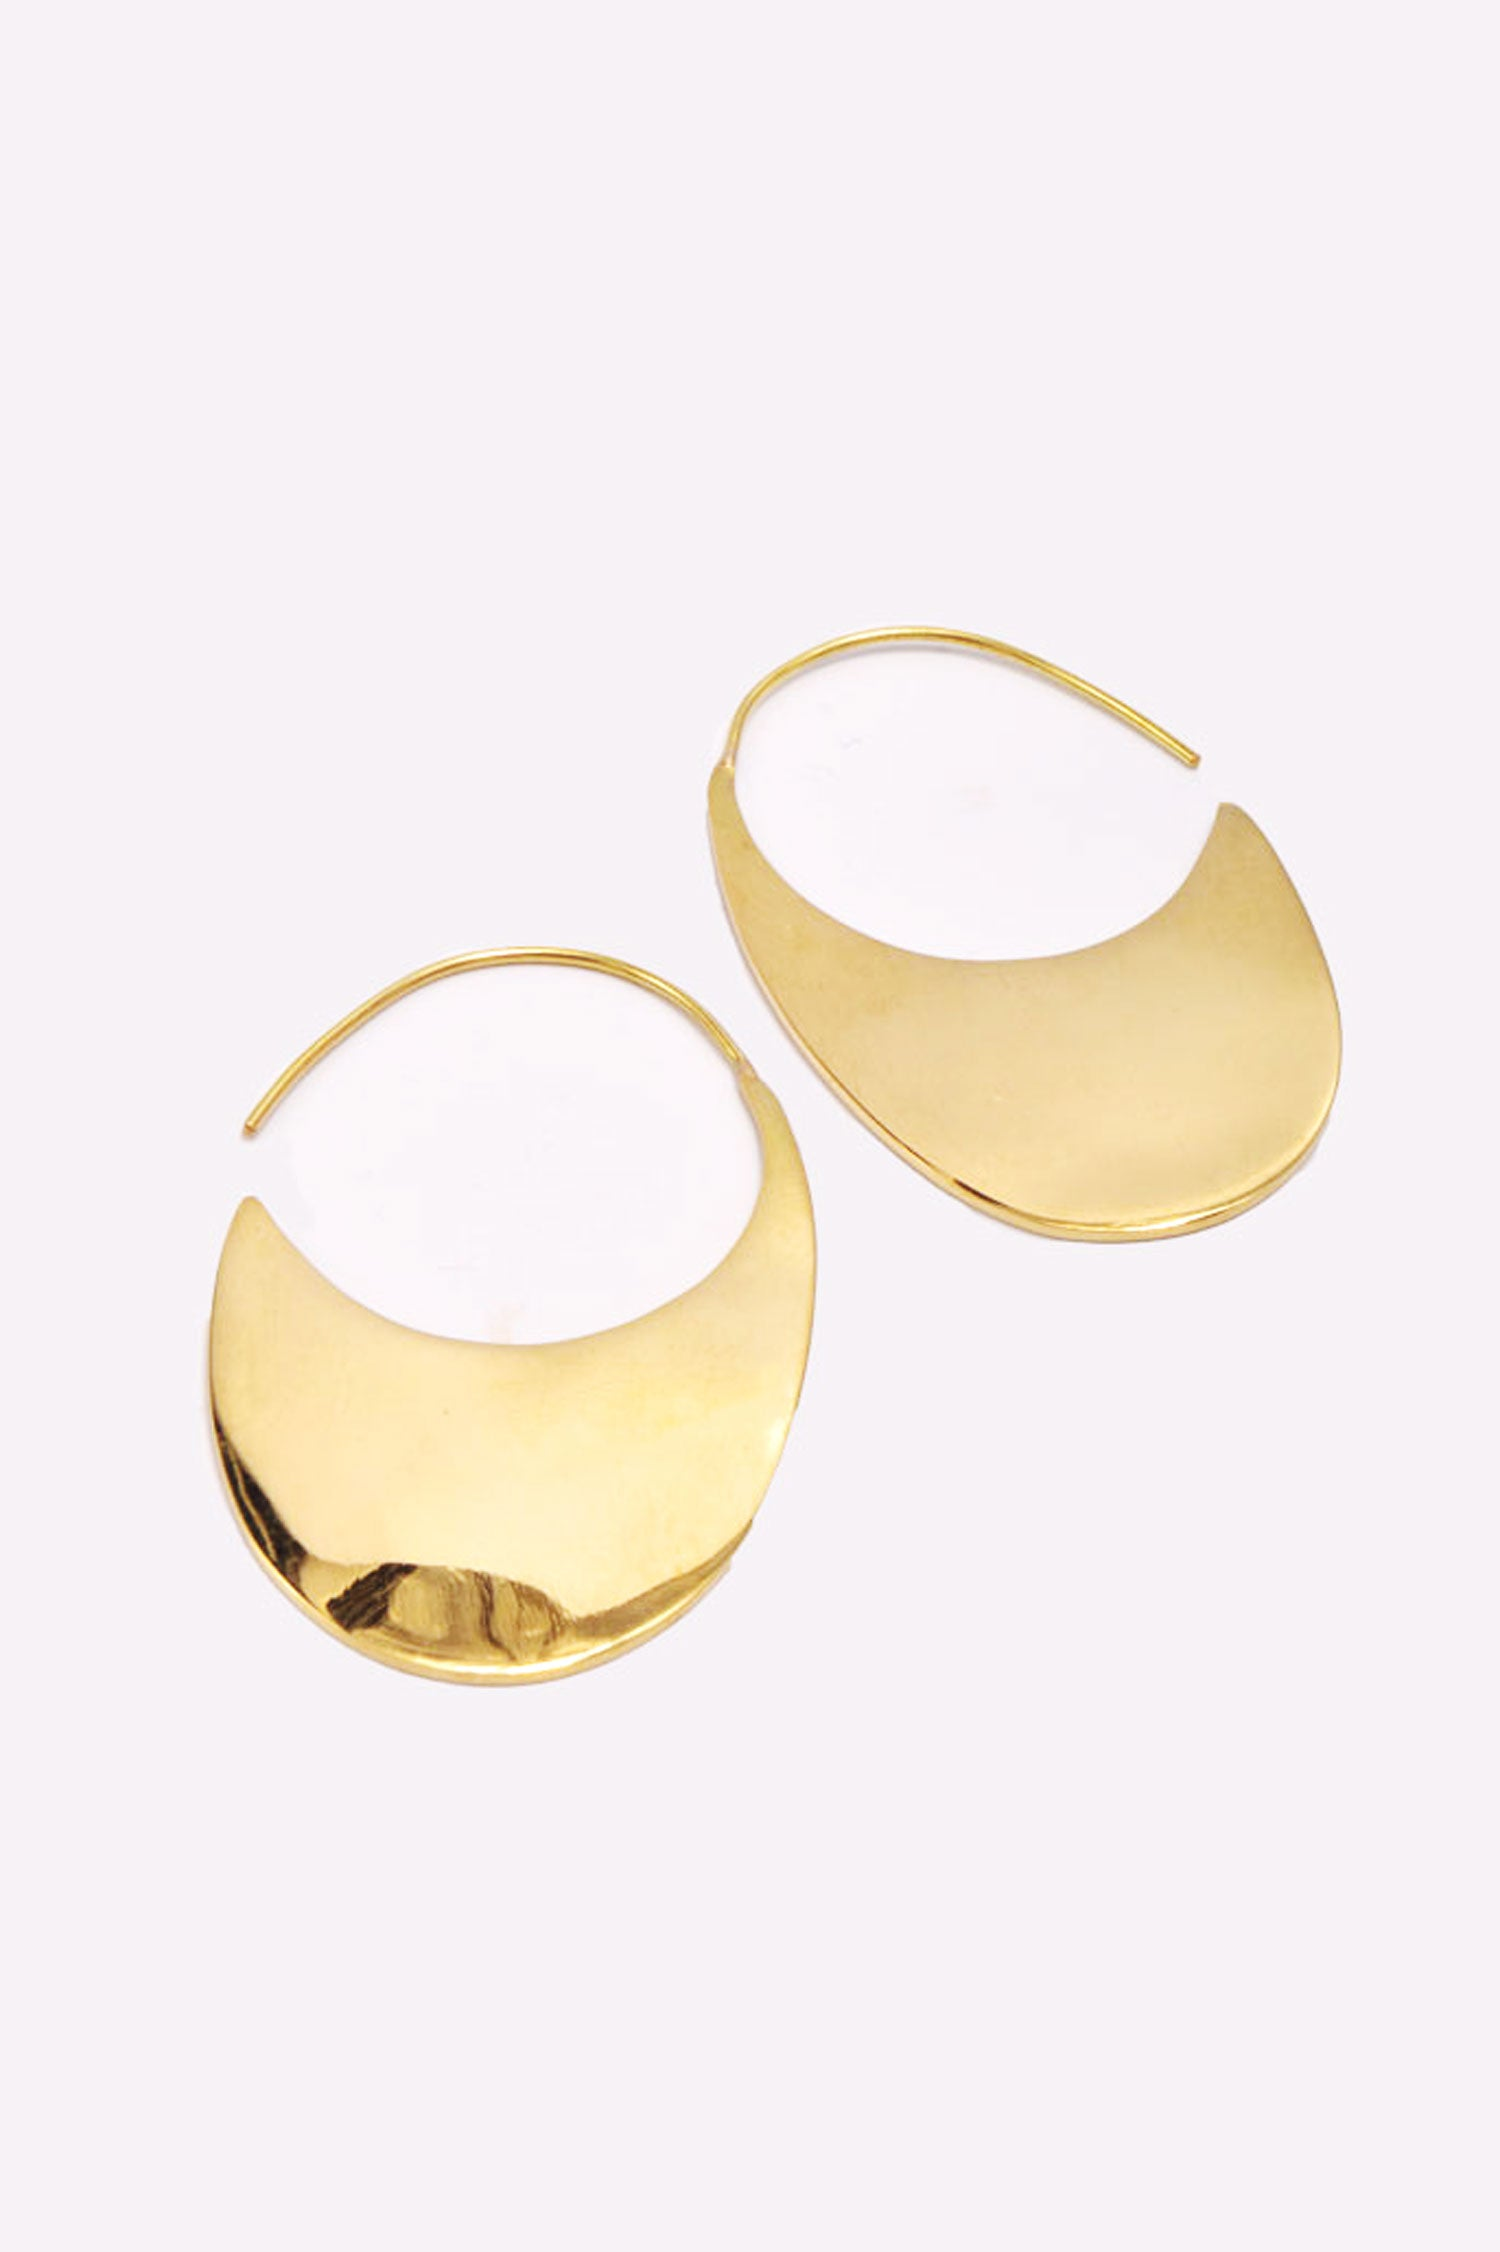 Soko Ethical Jewelry Mezi Drama Threader Earrings in Brass